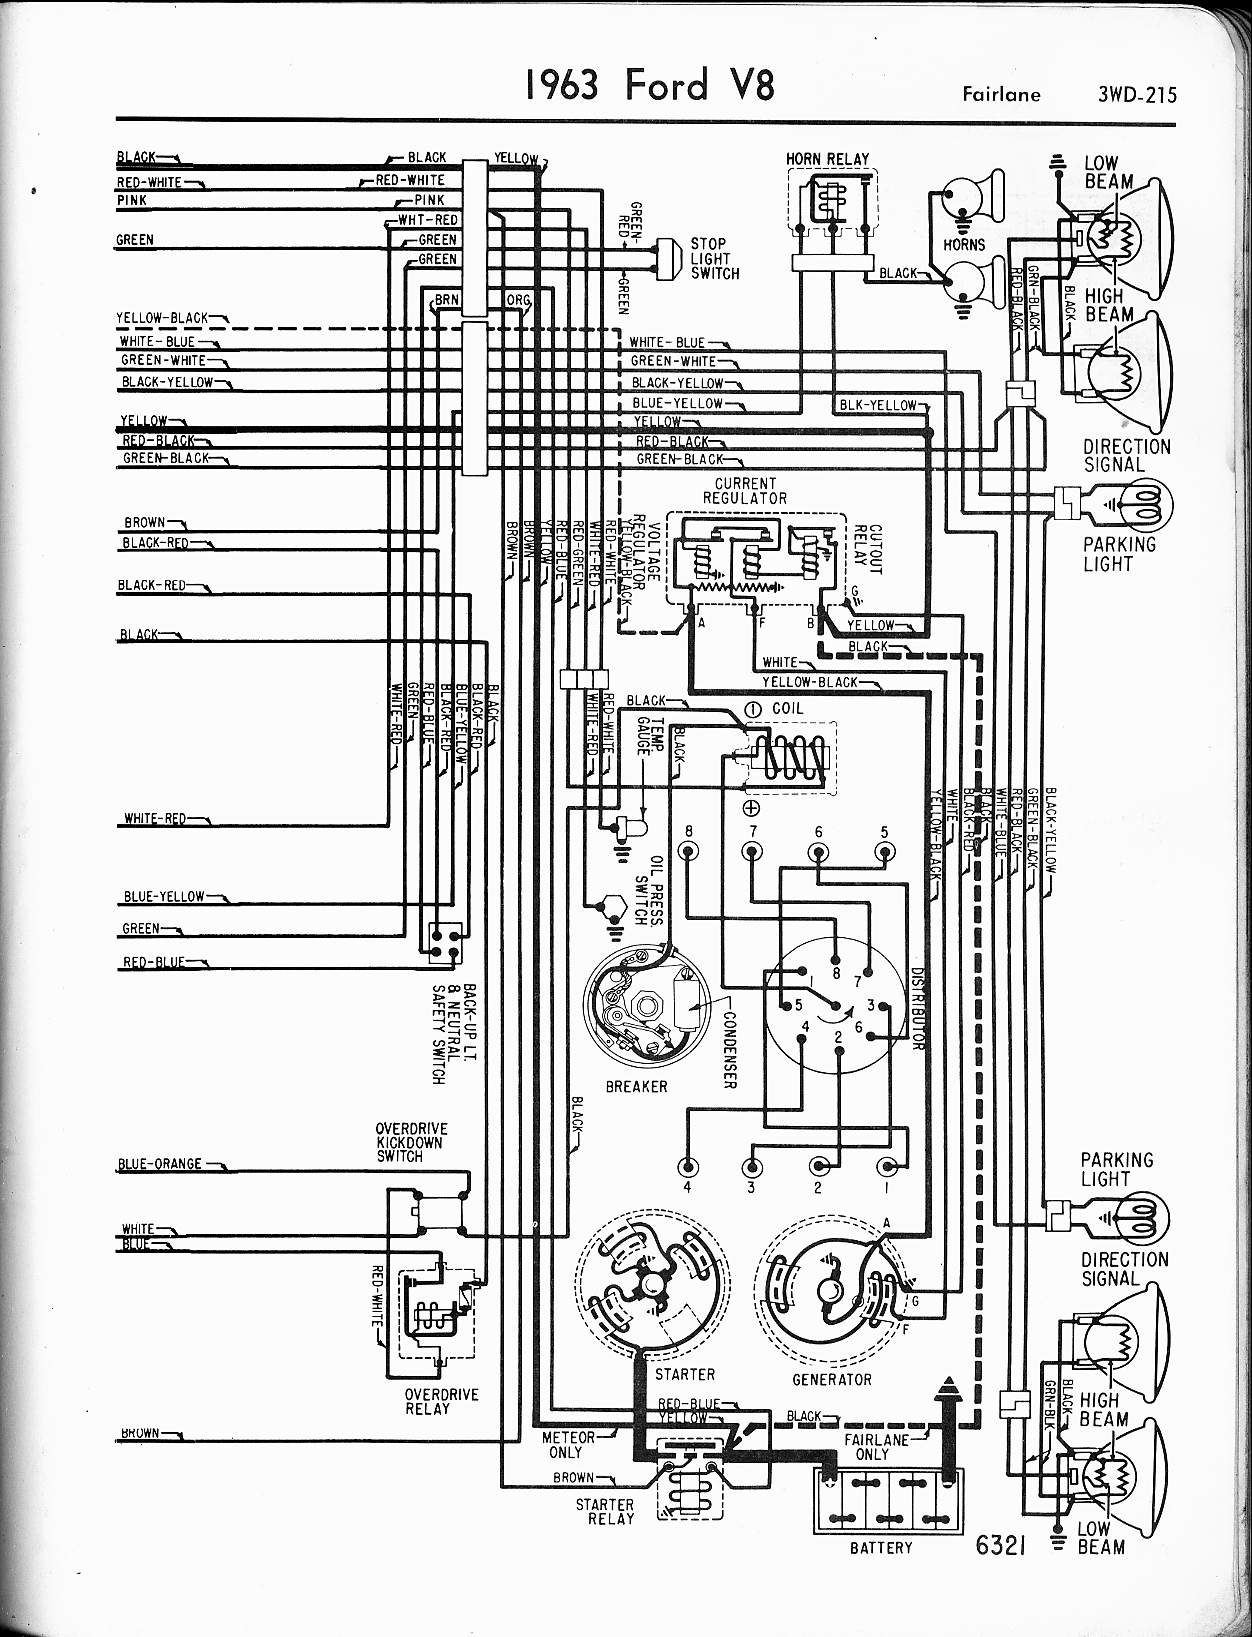 65 fairlane wiring diagram clean schematics wiring diagrams u2022 rh rslroyalty com 1966 mercury 500 wiring diagram